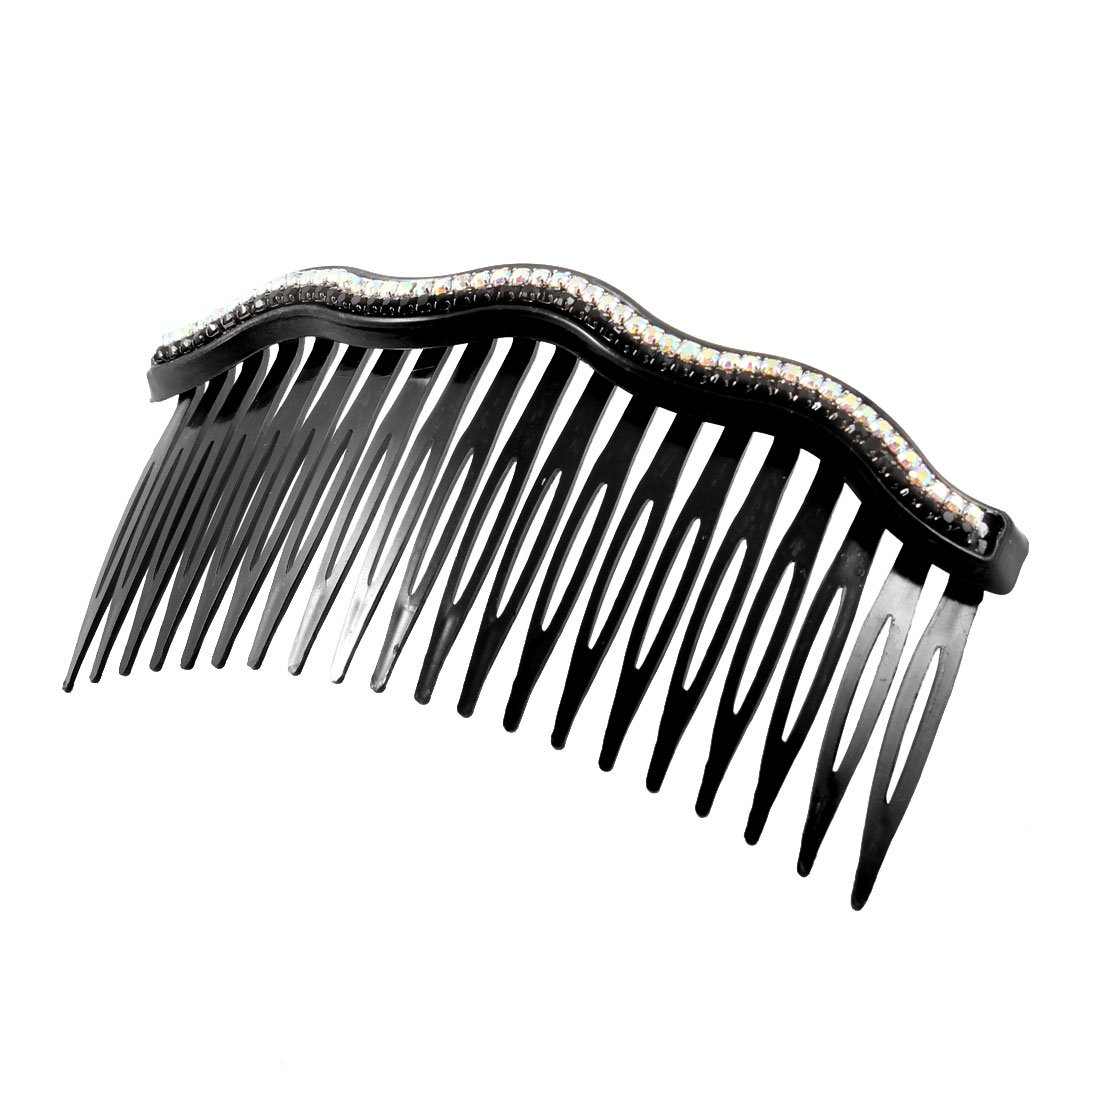 uxcell Plastic Lady Women Artificial Rhinestones Inlaid 20 Tooth Hair Comb Clip Black a13110400ux0931